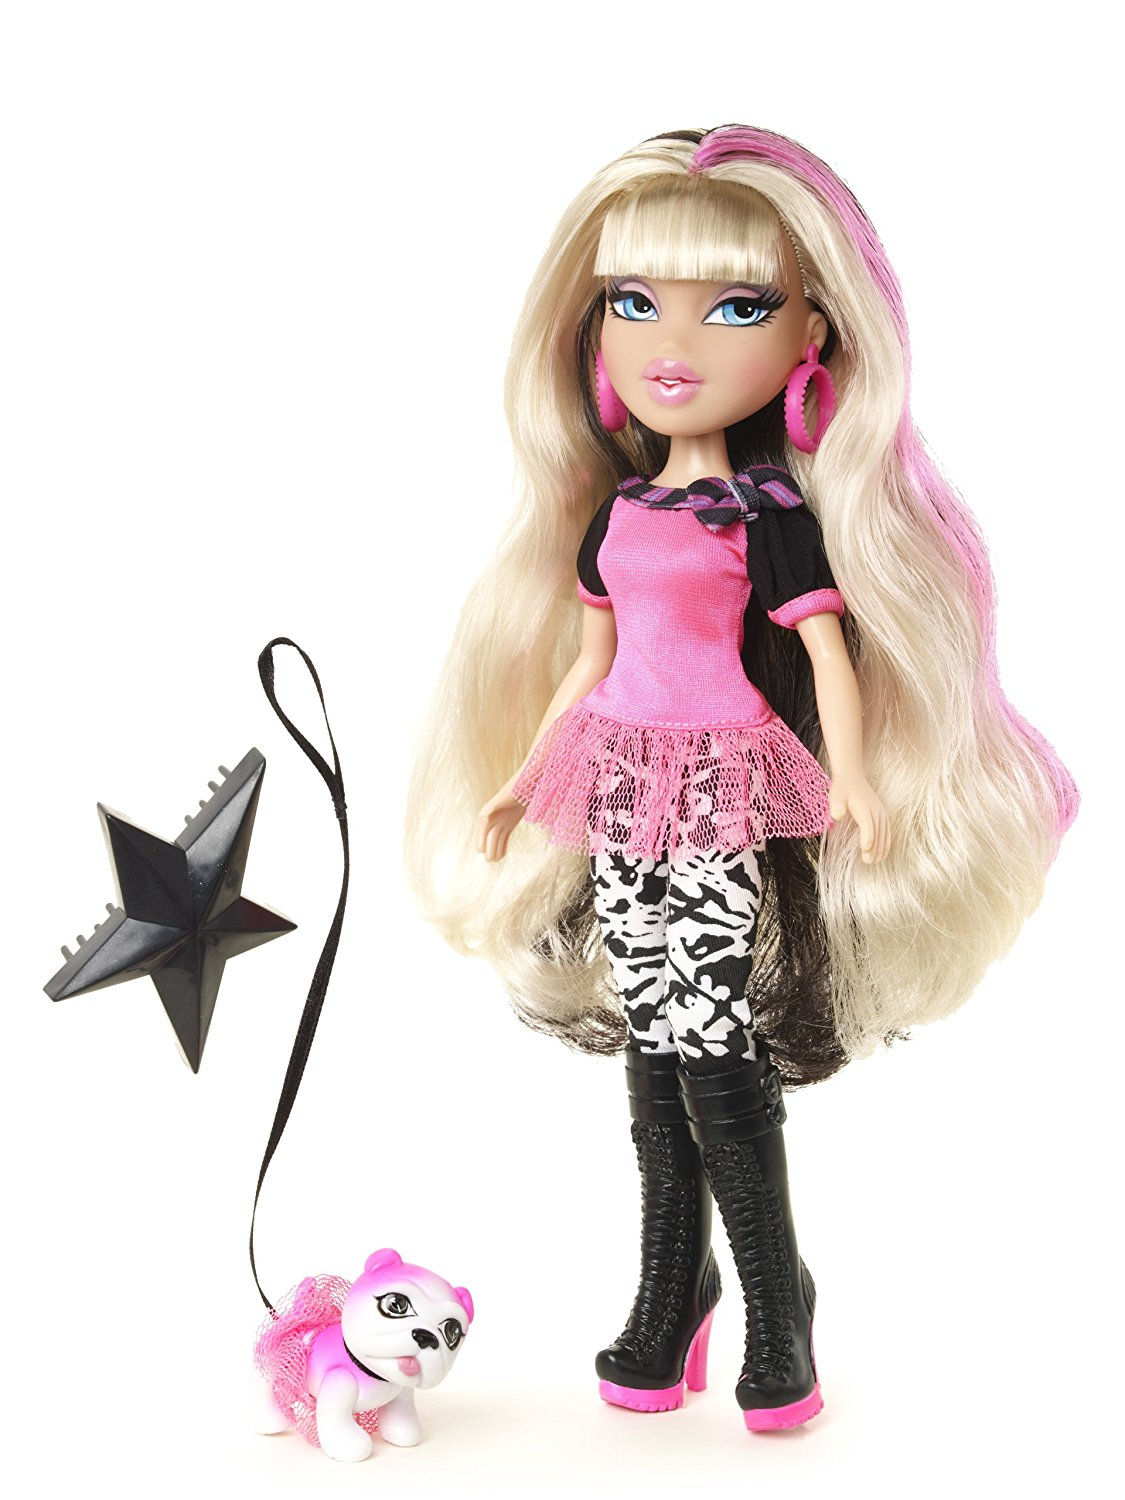 Neon Runway Doll Cloe (Blonde, Black and Pink), Neon-trimmed boots and outfits By Bratz... by